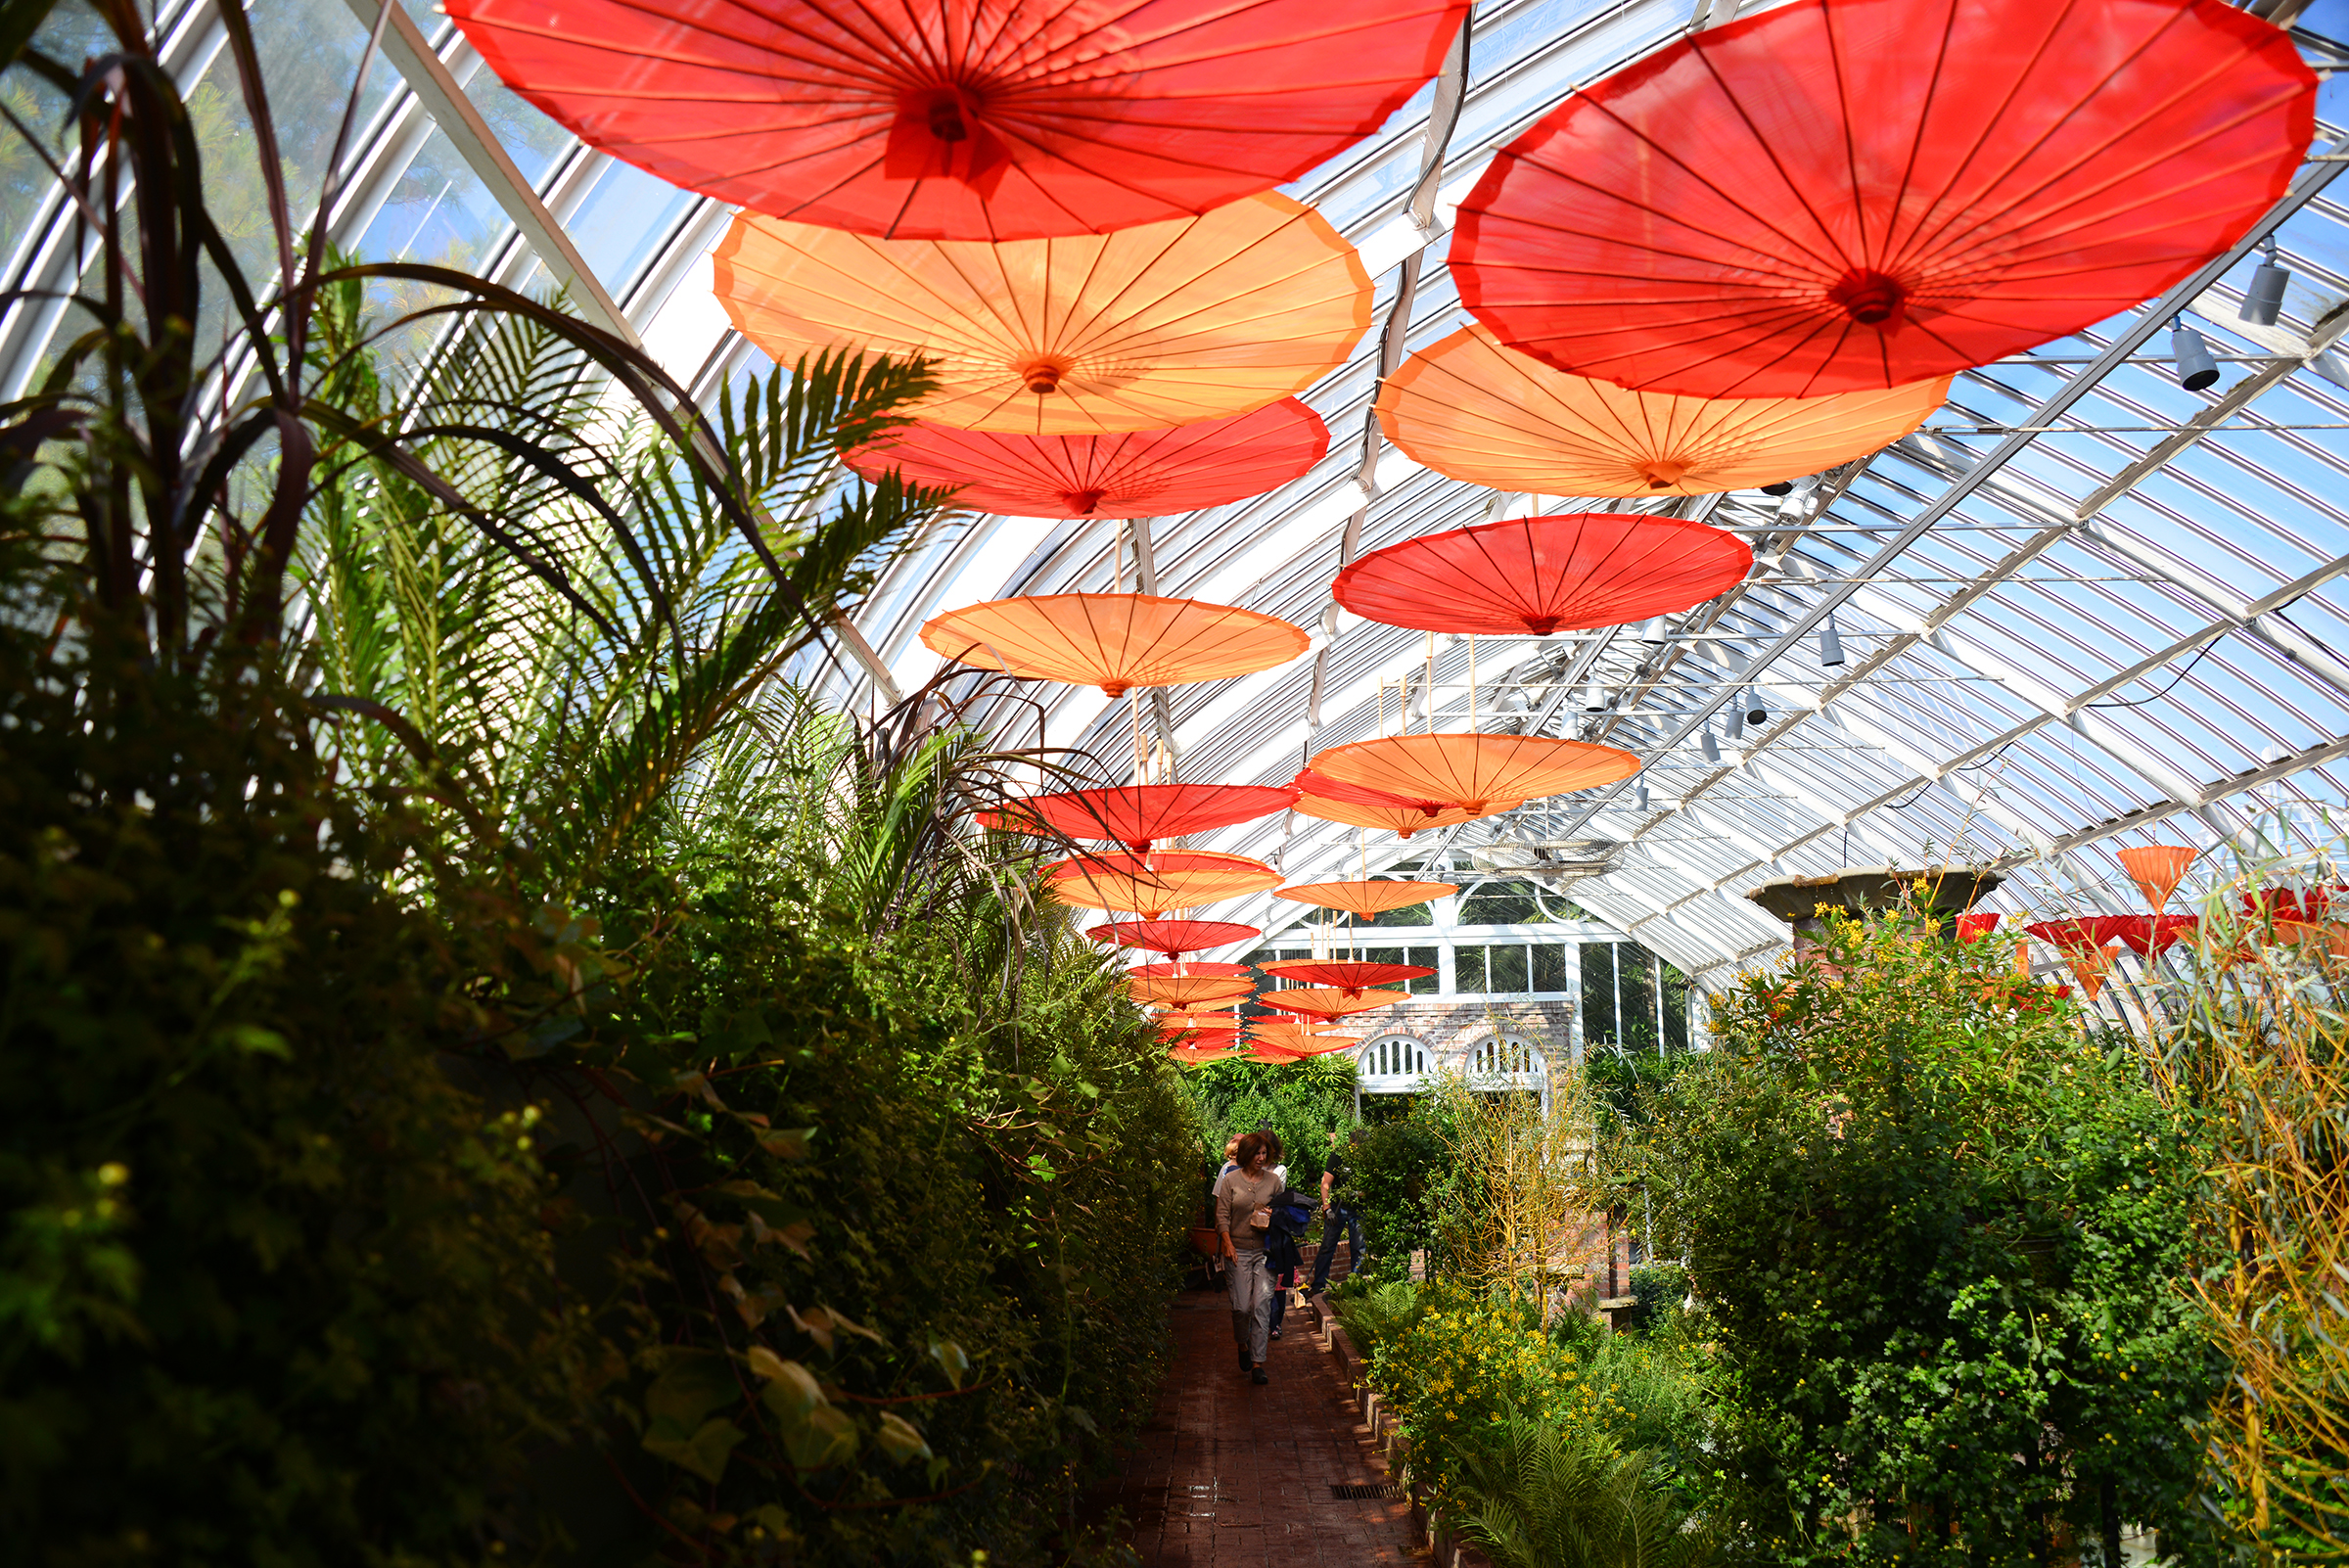 Umbrellas are in display in the Sunken Garden at Phipps Conservatory and Botanical Gardens in Oakland.